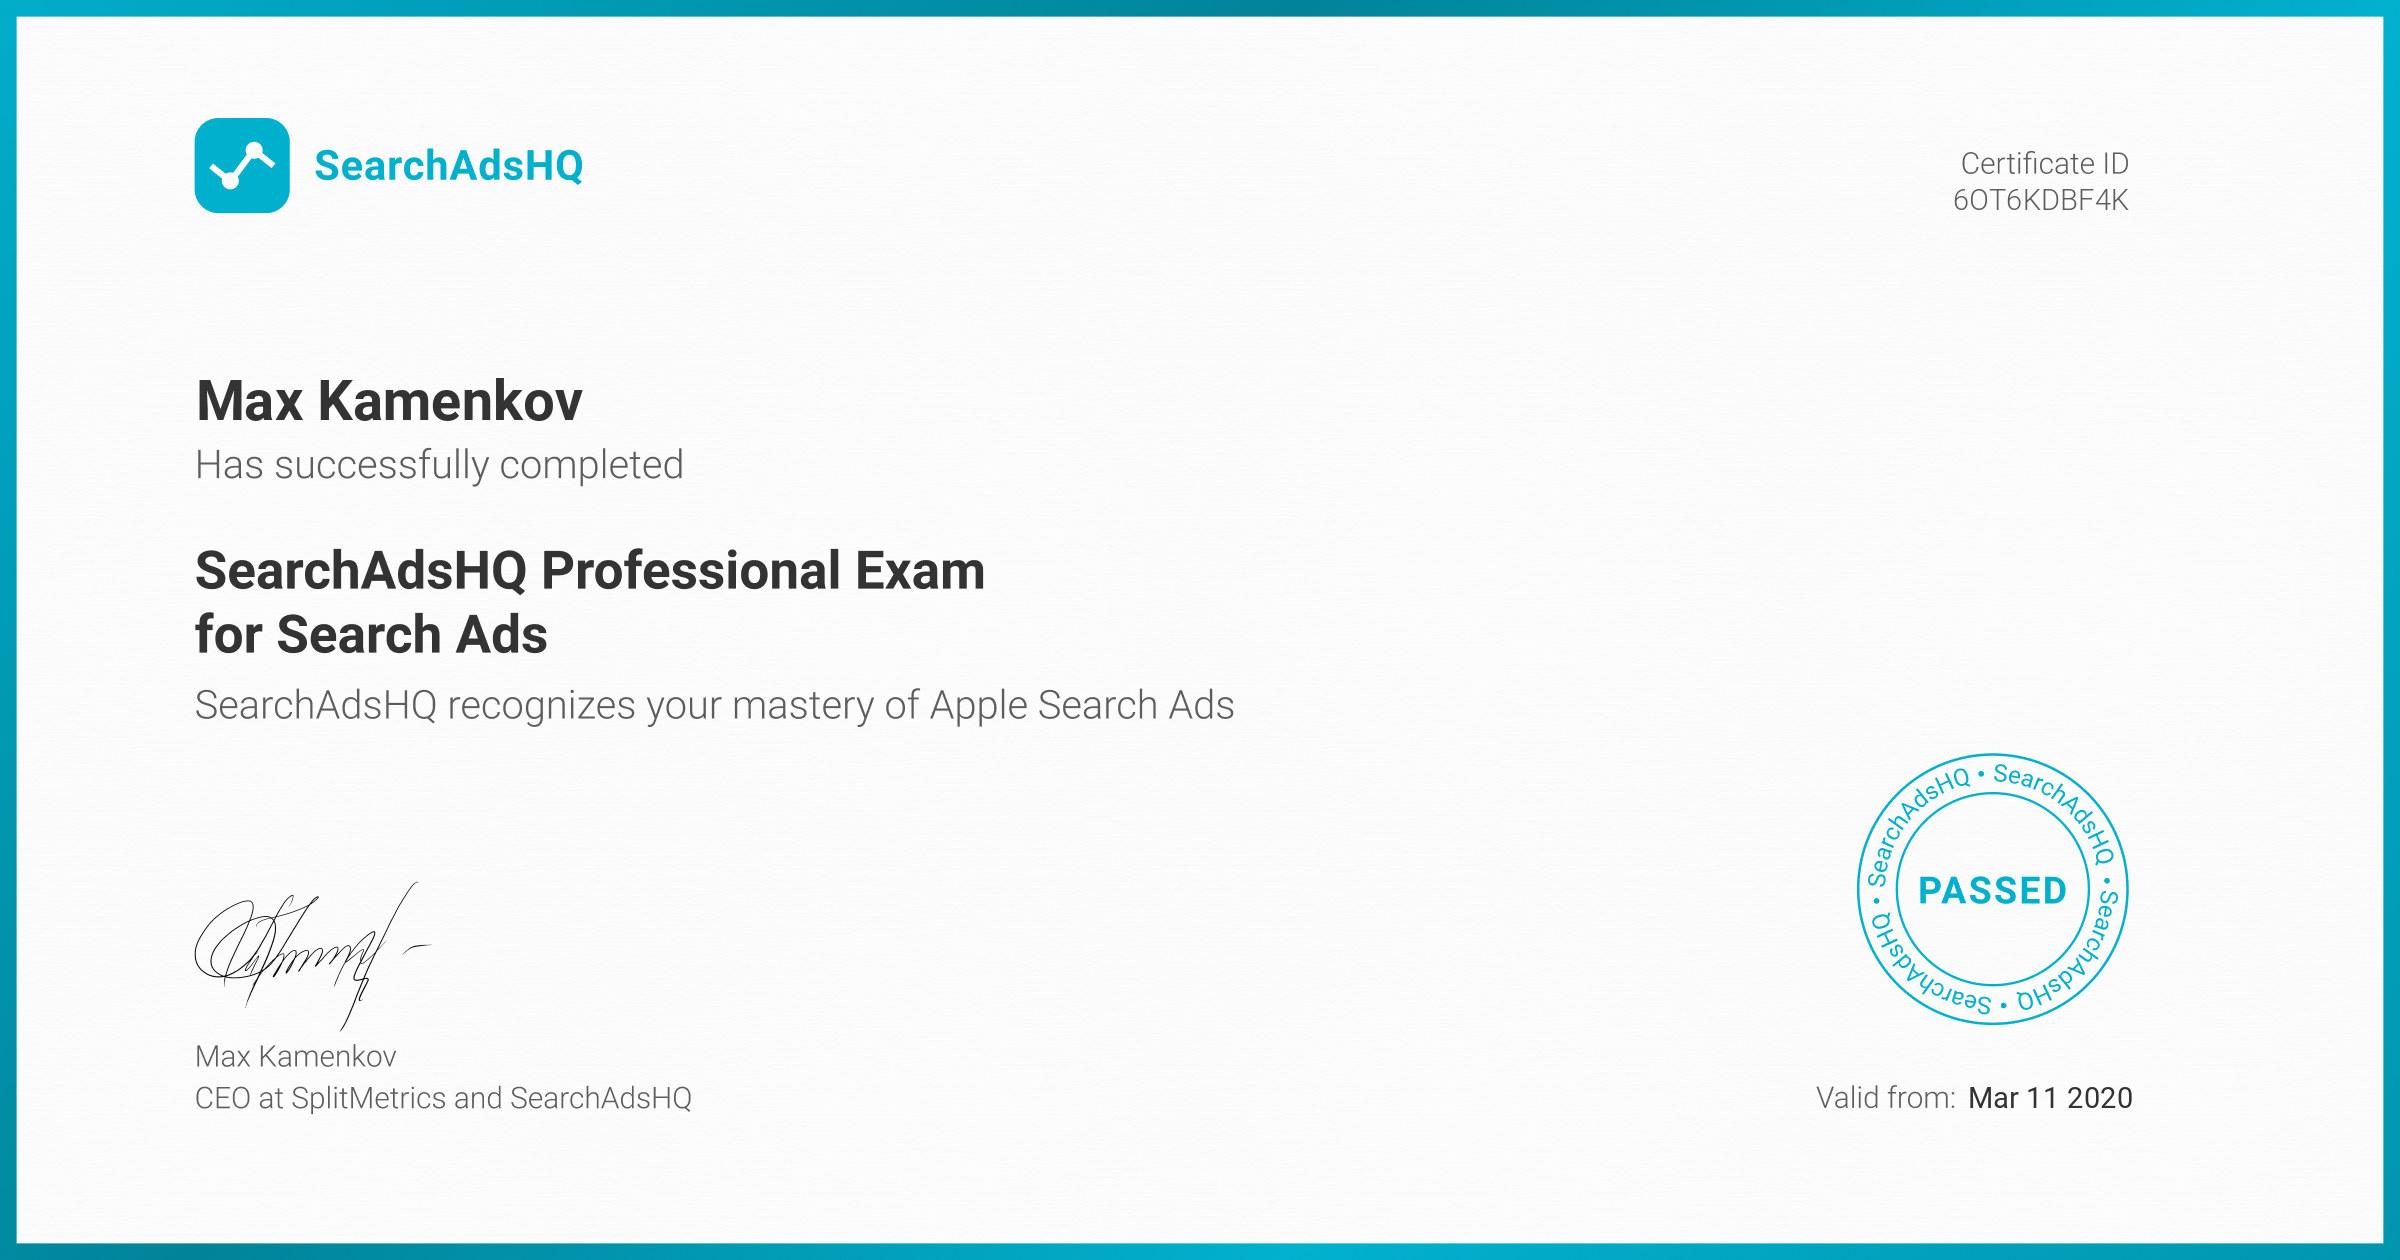 Certificate for Max Kamenkov | SearchAdsHQ Professional Exam for Search Ads